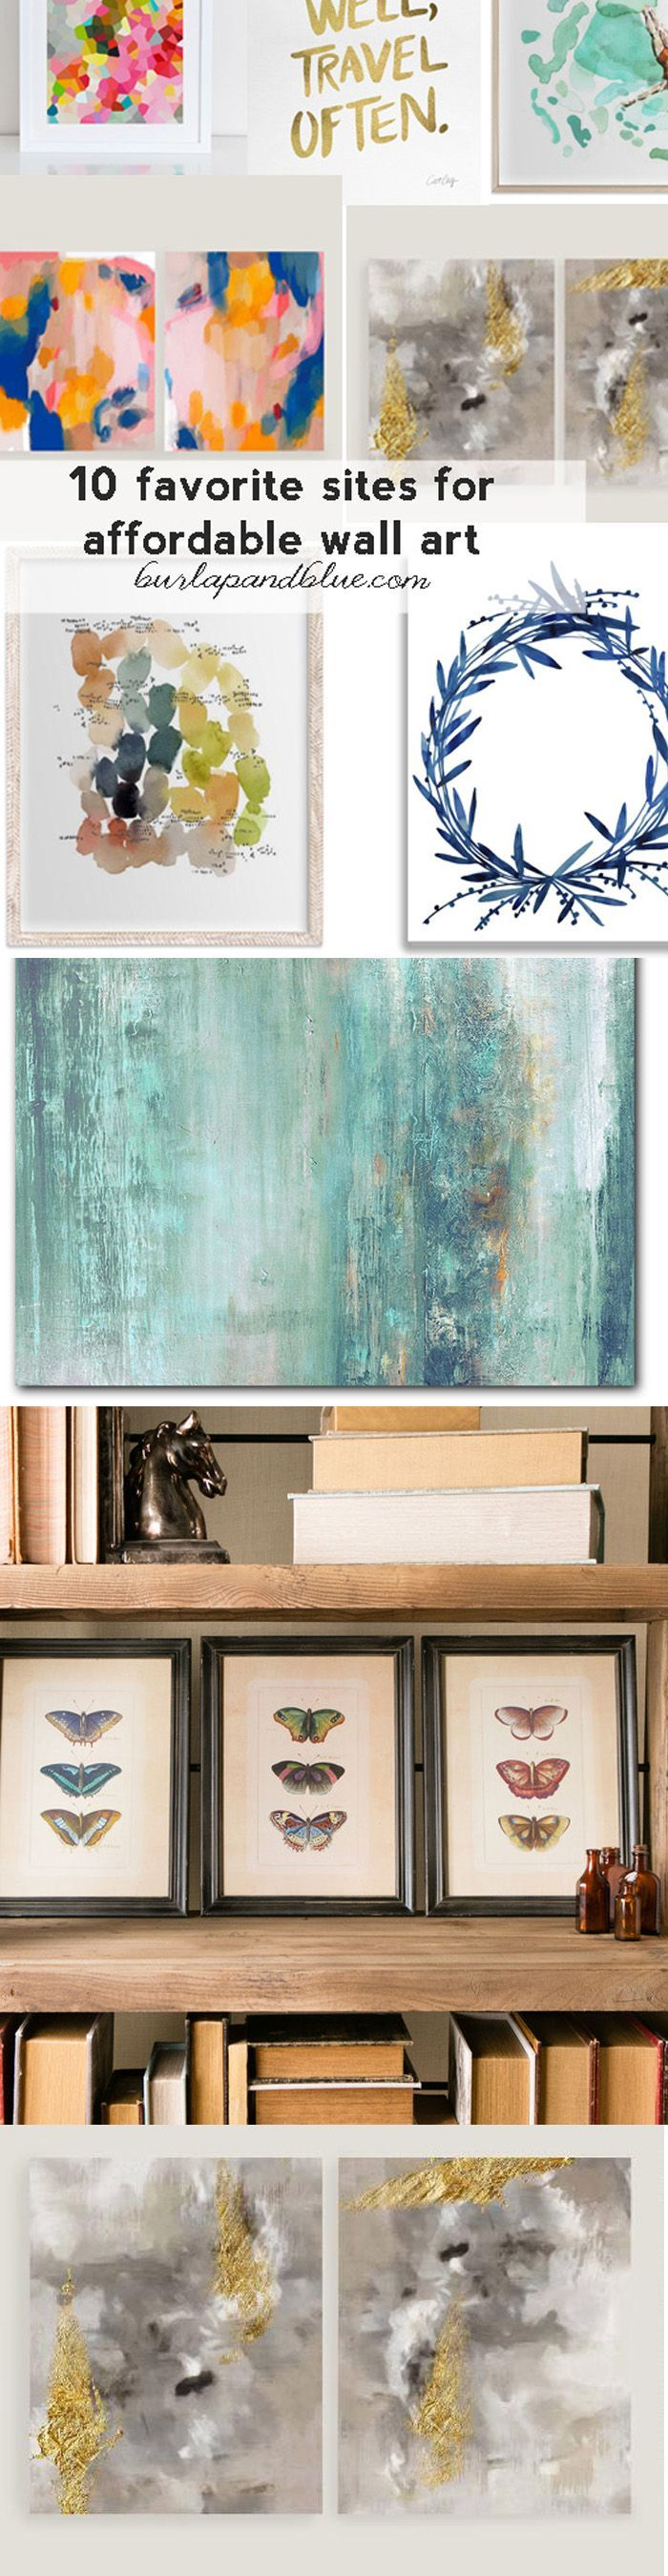 10 best sites for affordable wall art